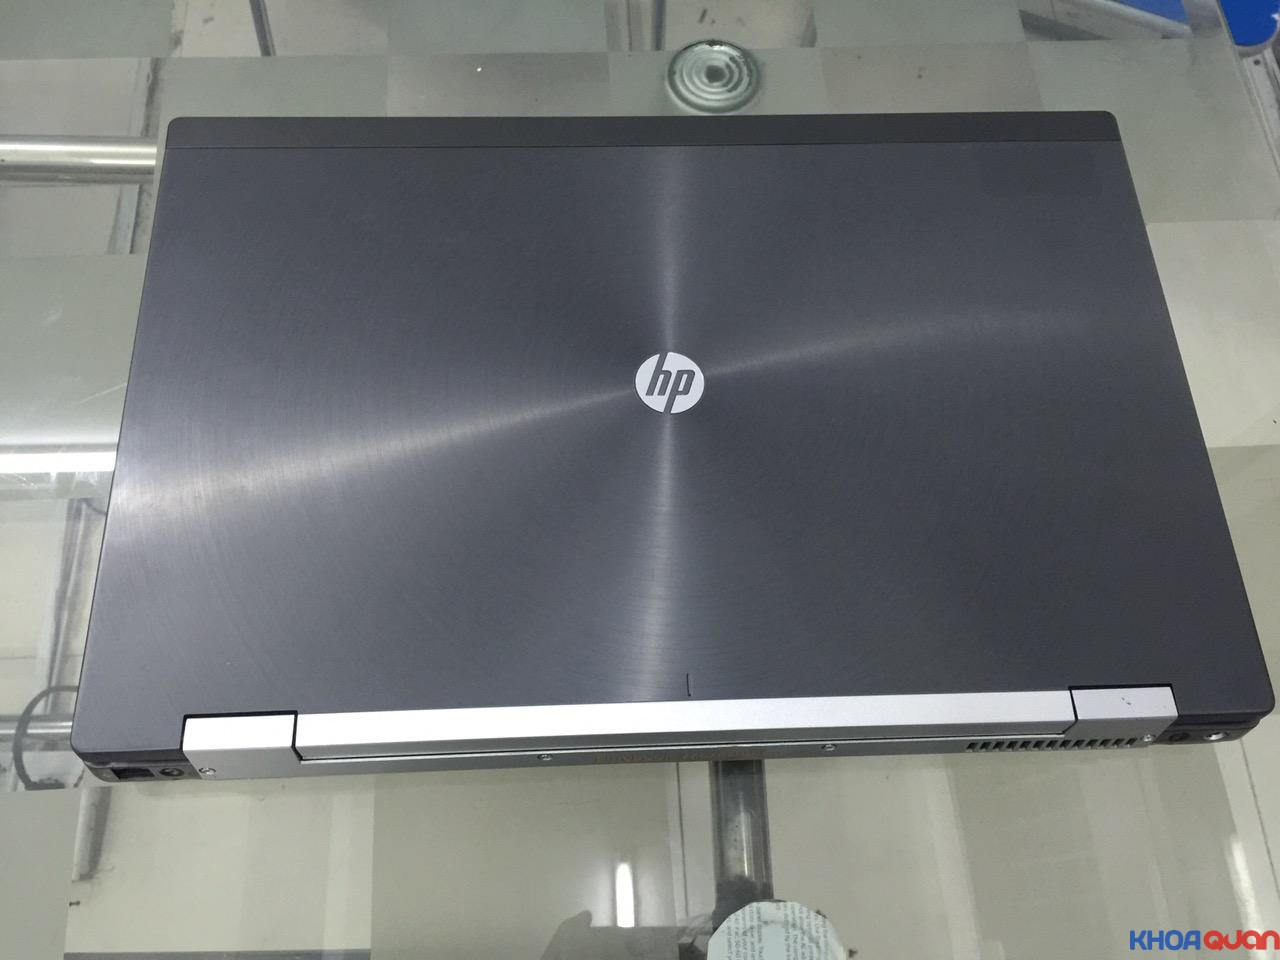 HP Elitebook 8760W-i7-17-5